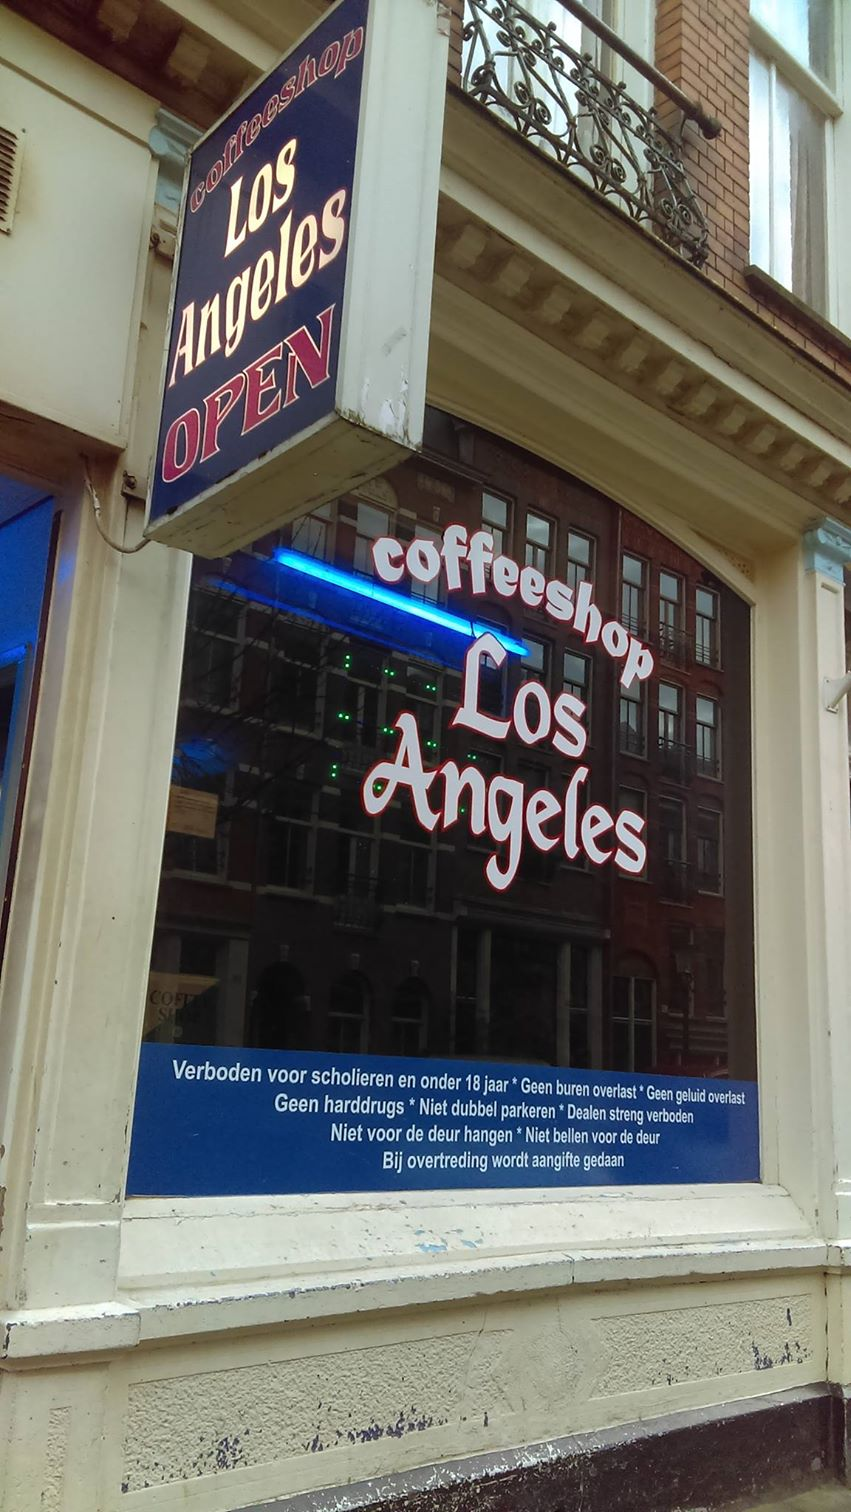 Los Angeles Coffeeshop Amsterdam - Weed Recommend